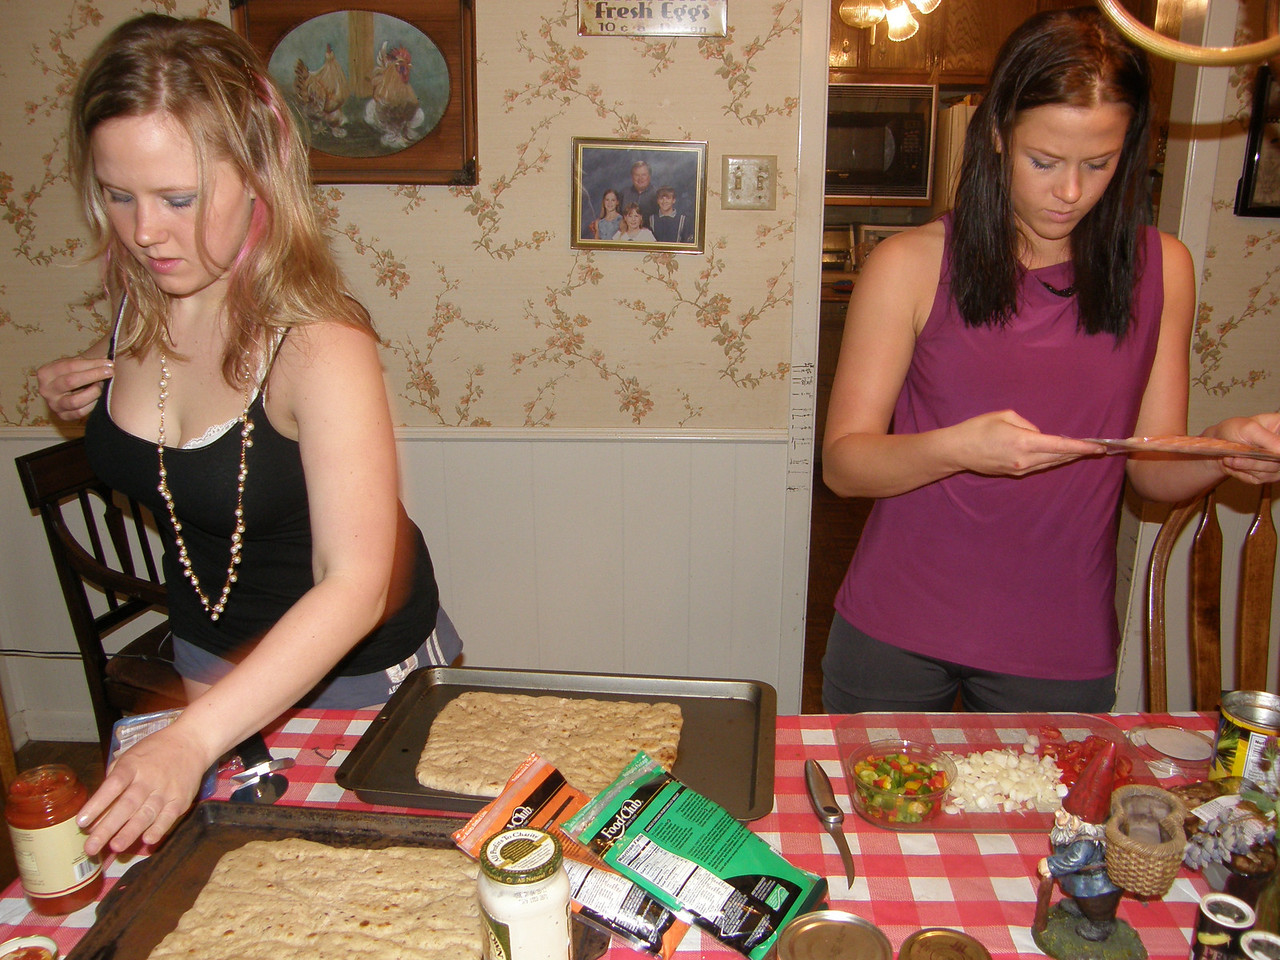 Katie and Sarah, preparing to make some pizza!